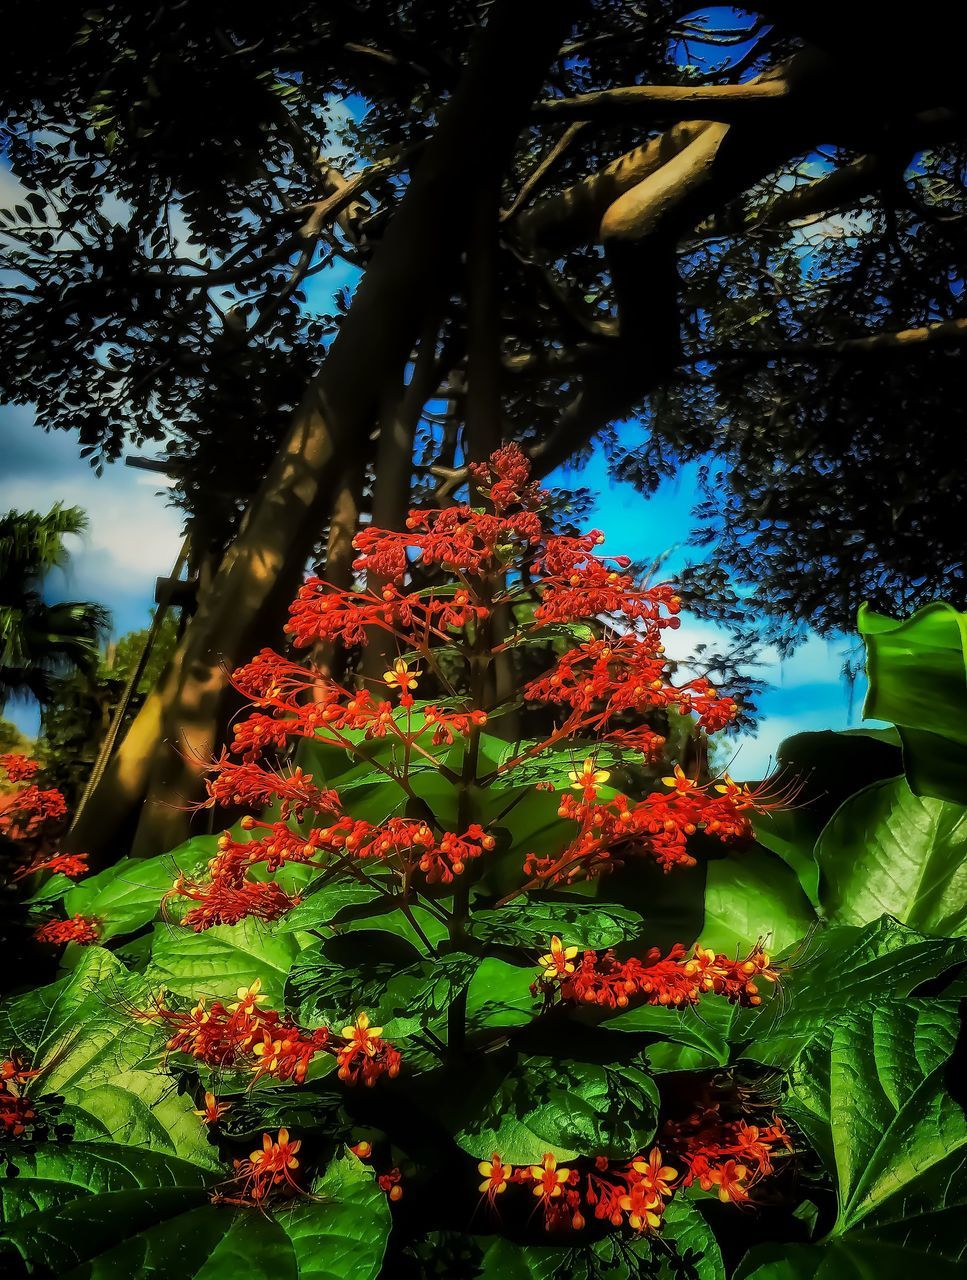 tree, growth, nature, beauty in nature, low angle view, flower, day, leaf, outdoors, plant, no people, freshness